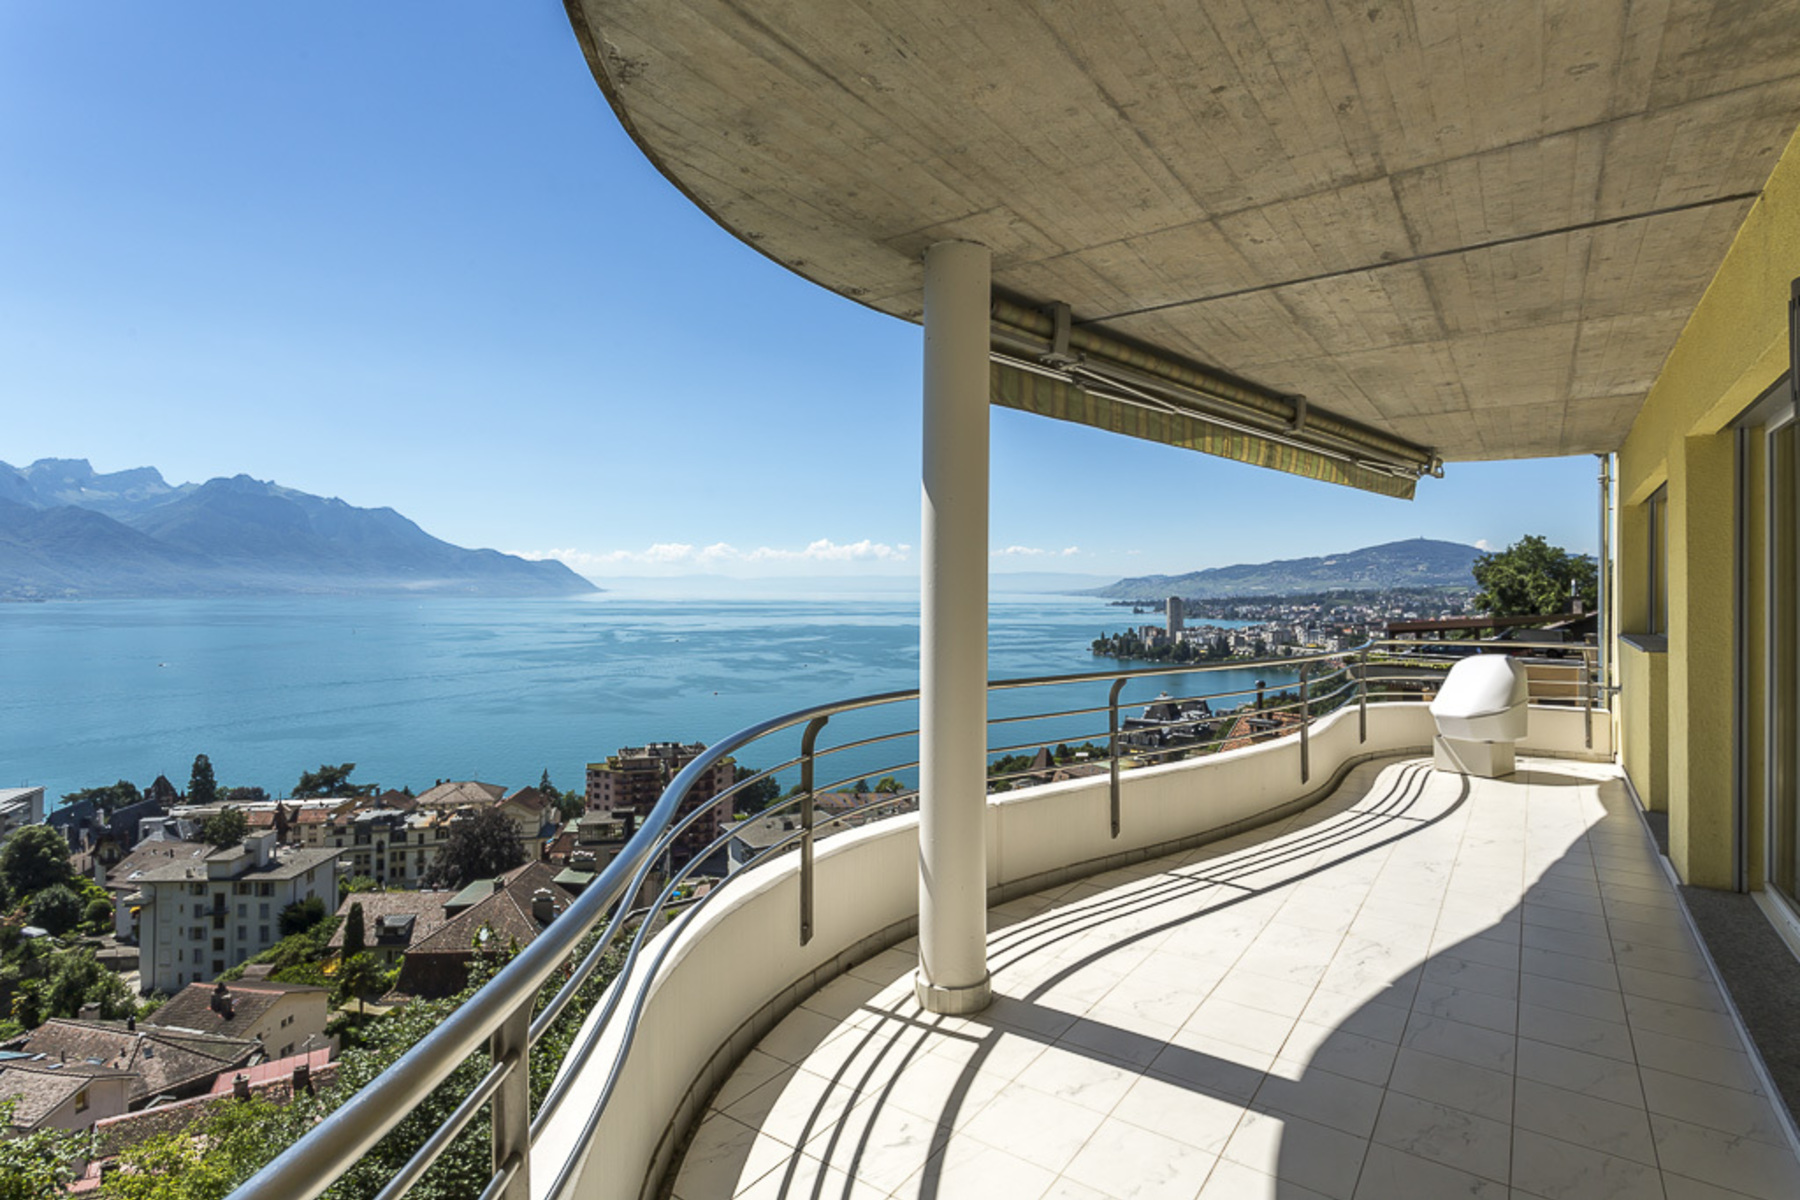 Condominium for Sale at Stunning 4.5 room apartment enjoying total peace and quiet Unobstructed views o Territet Montreux, Vaud 1820 Switzerland